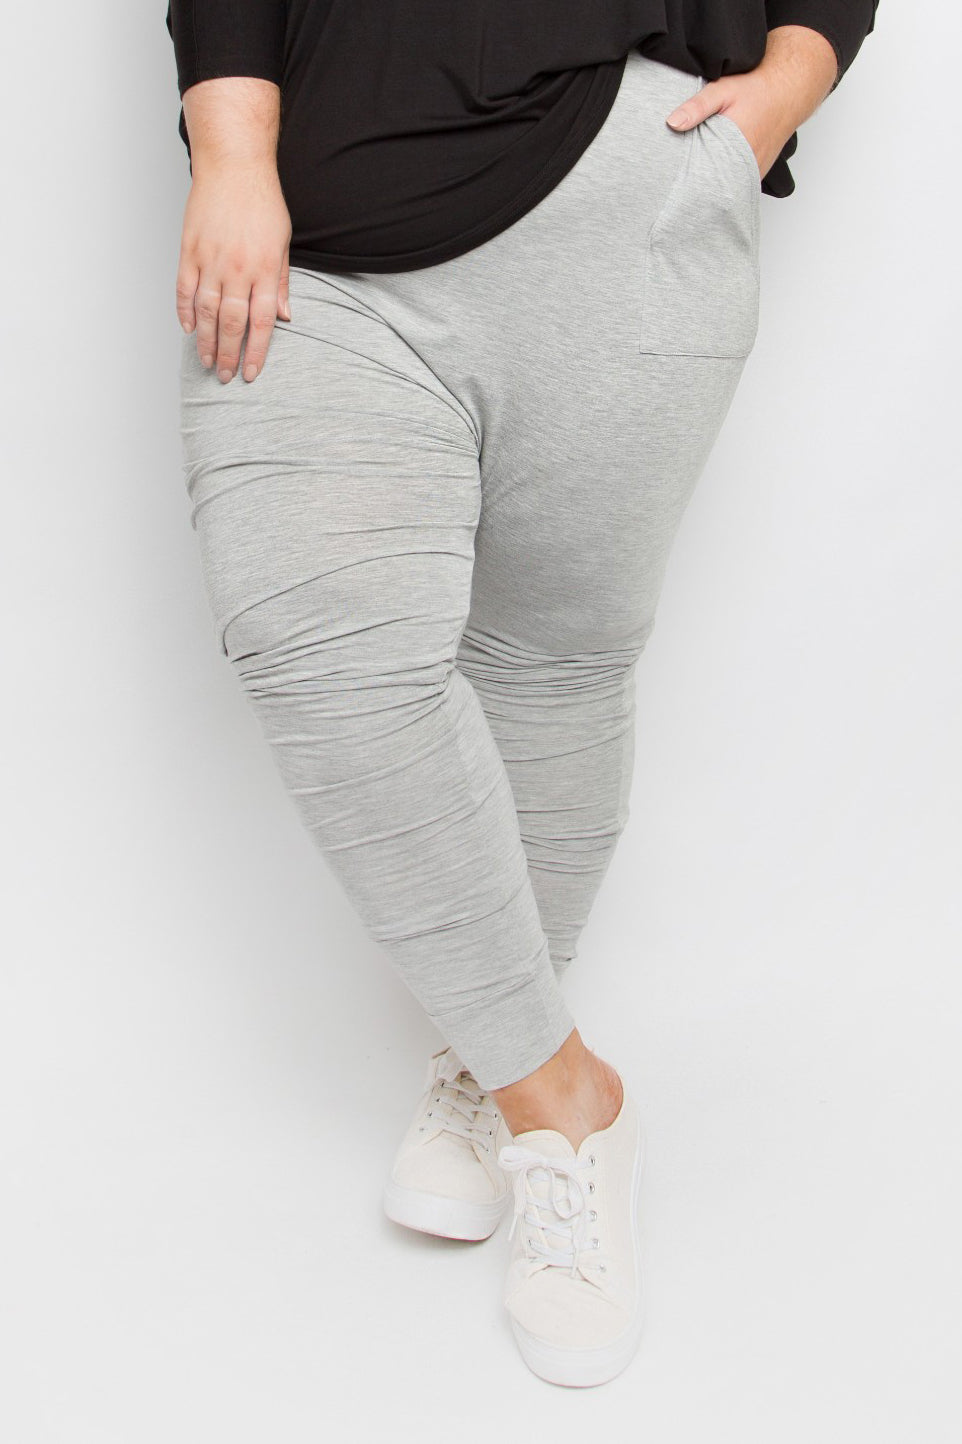 Curve Bamboo Cuffed Droppy Pant in Marle Grey